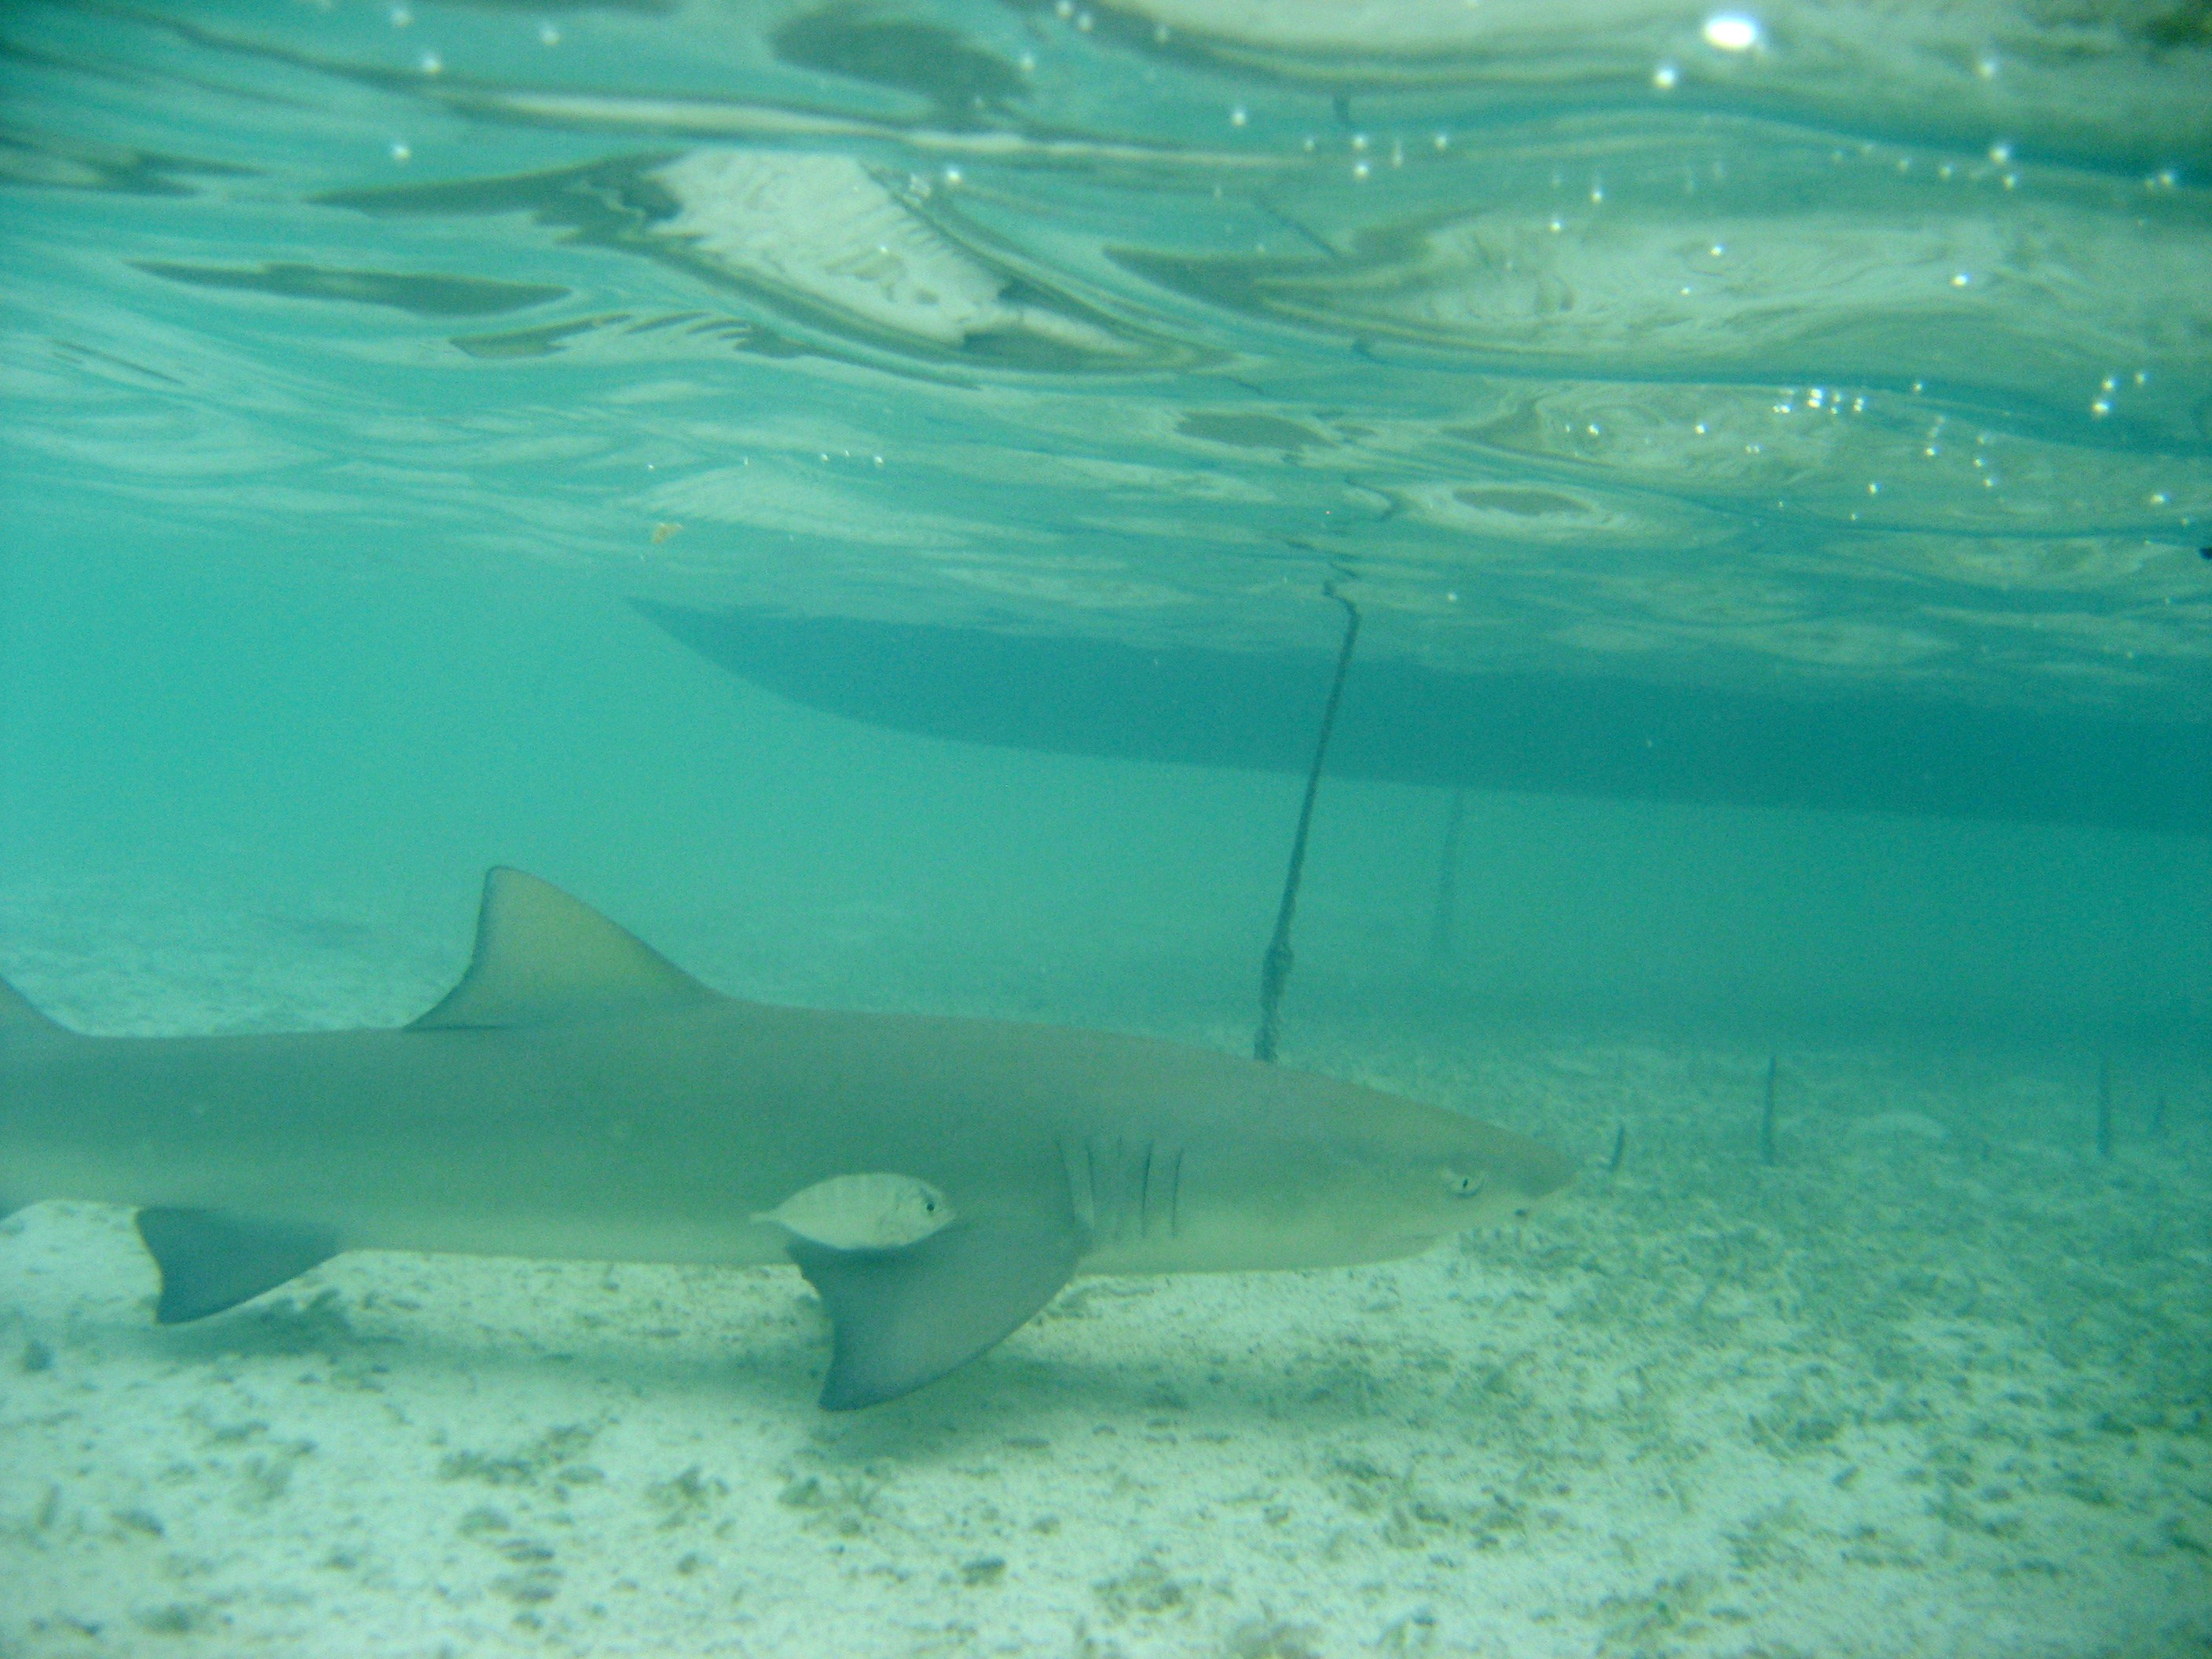 a study on the reproduction of the lemon shark of the bimini islands But, compared with other species of shark, lemon sharks are selective about their social circles they're much more likely to pal around with sharks their own size, said jean-sebastien finger , a biologist at the bimini field station.